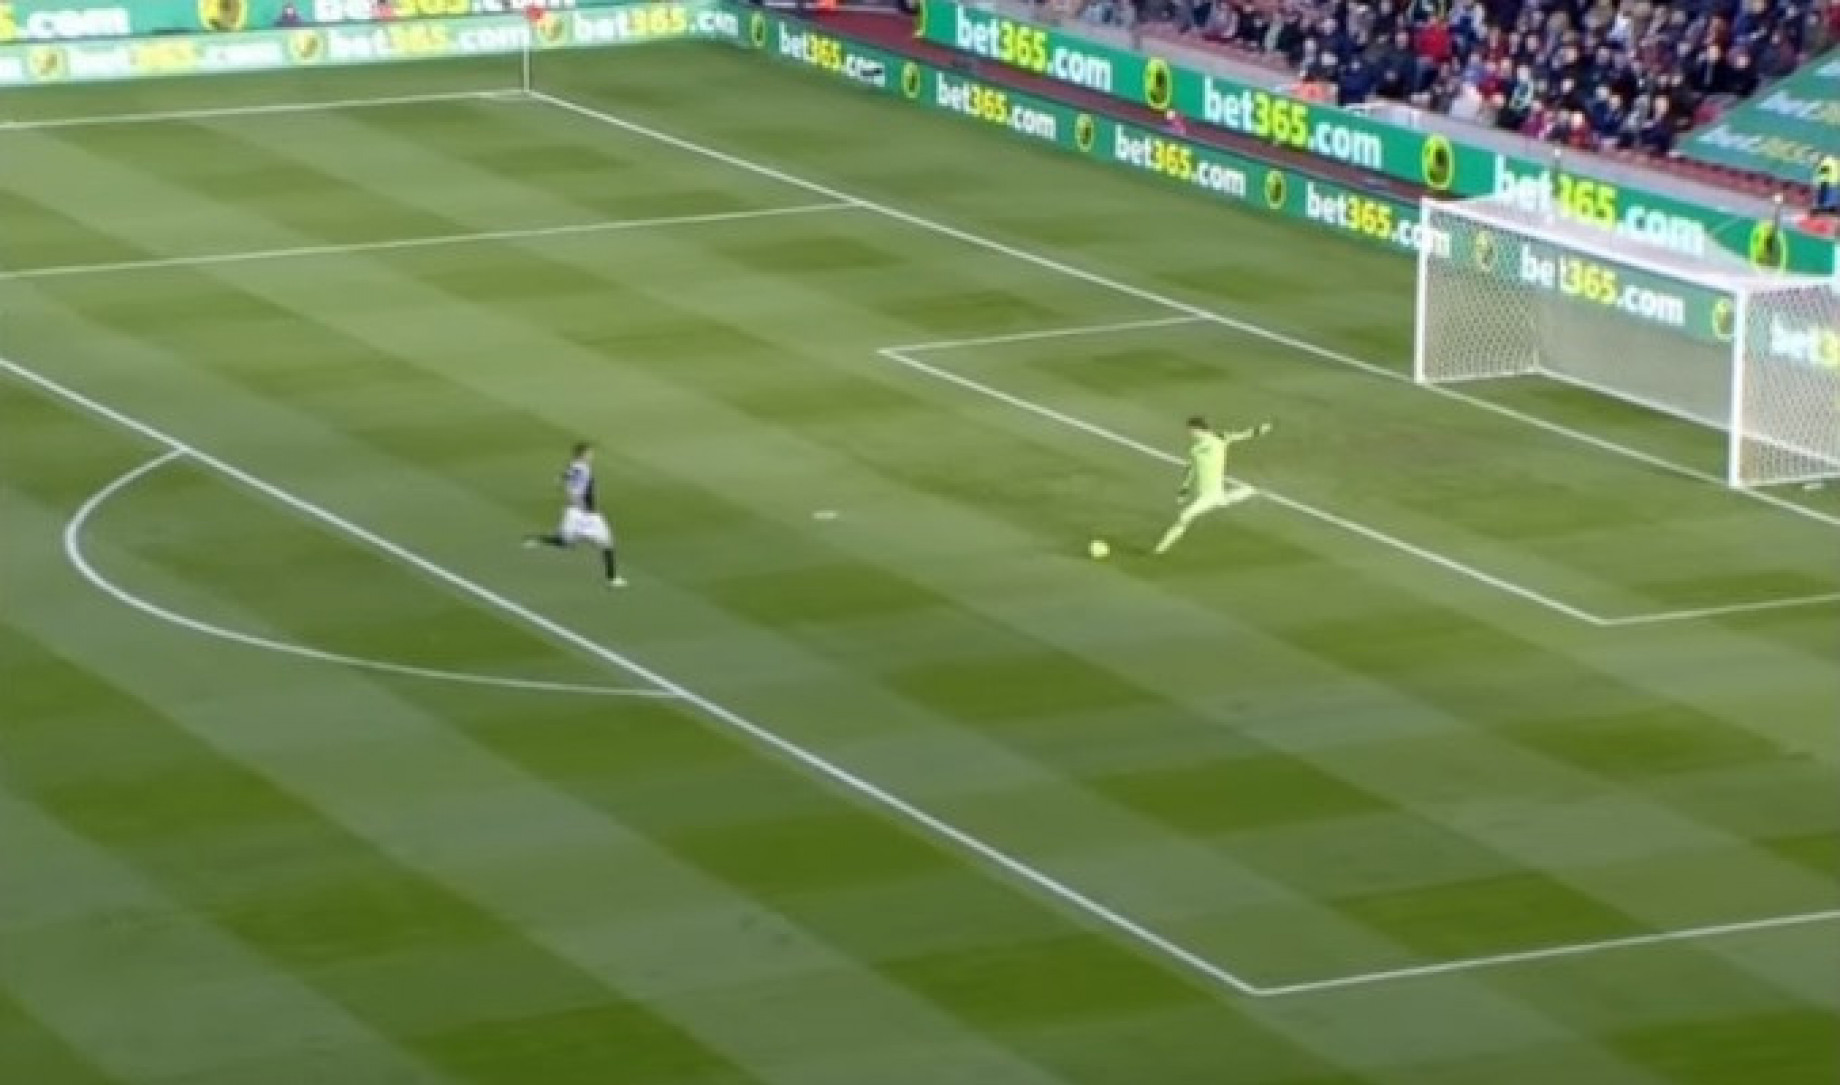 Begovic gol screen.jpg